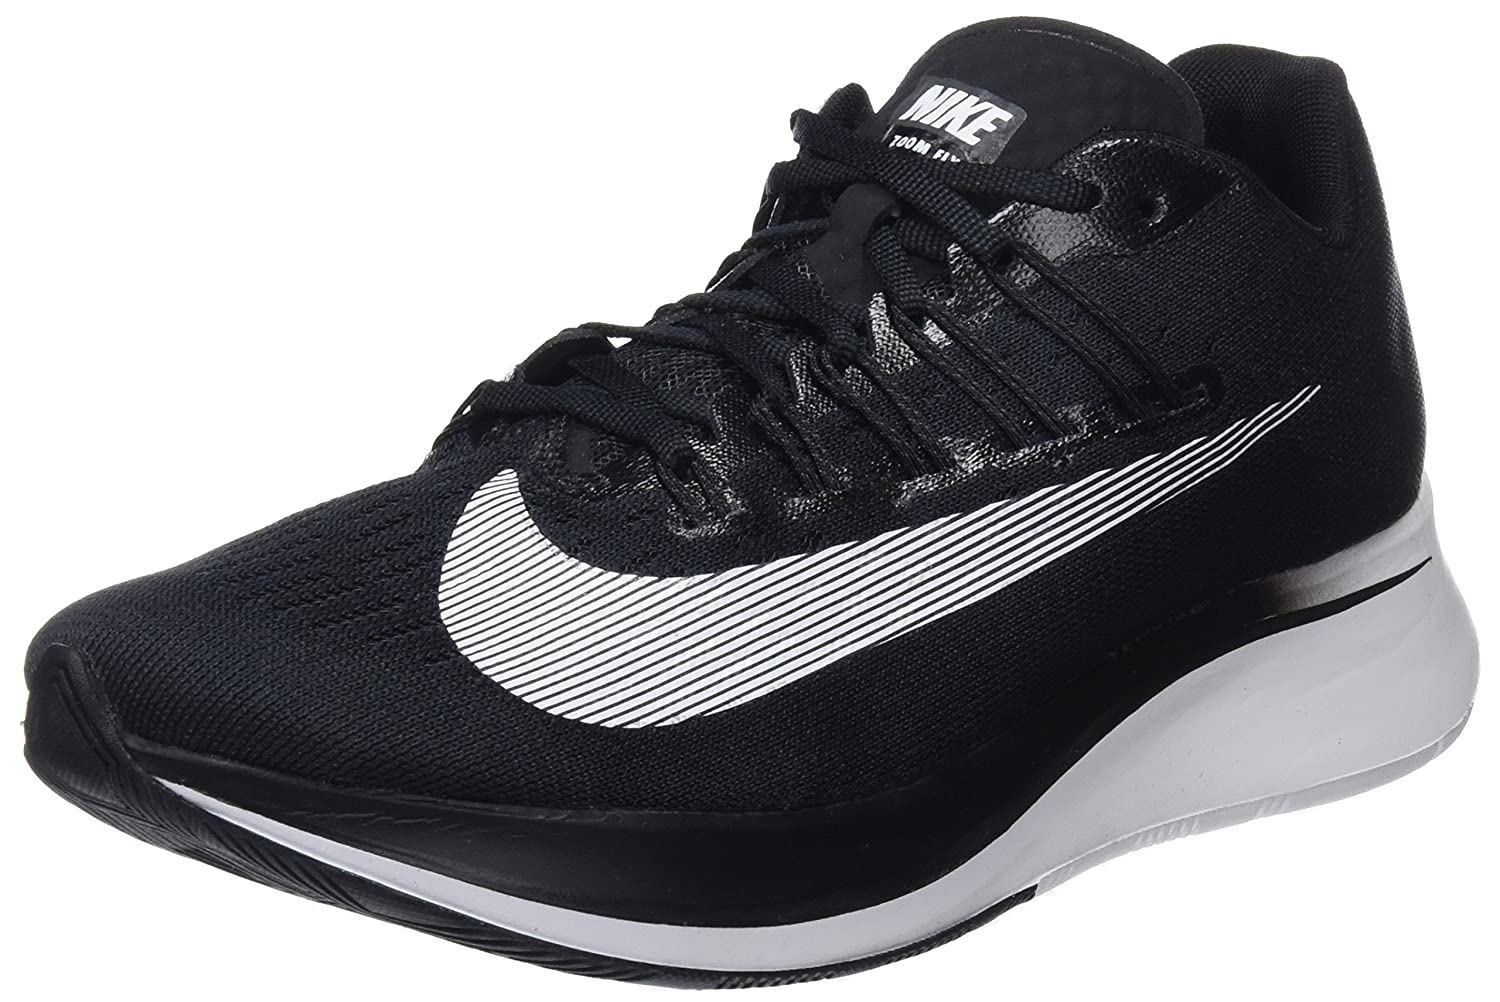 WMNS Zoom Fly B074587BMS 6.5 M US|Black/White